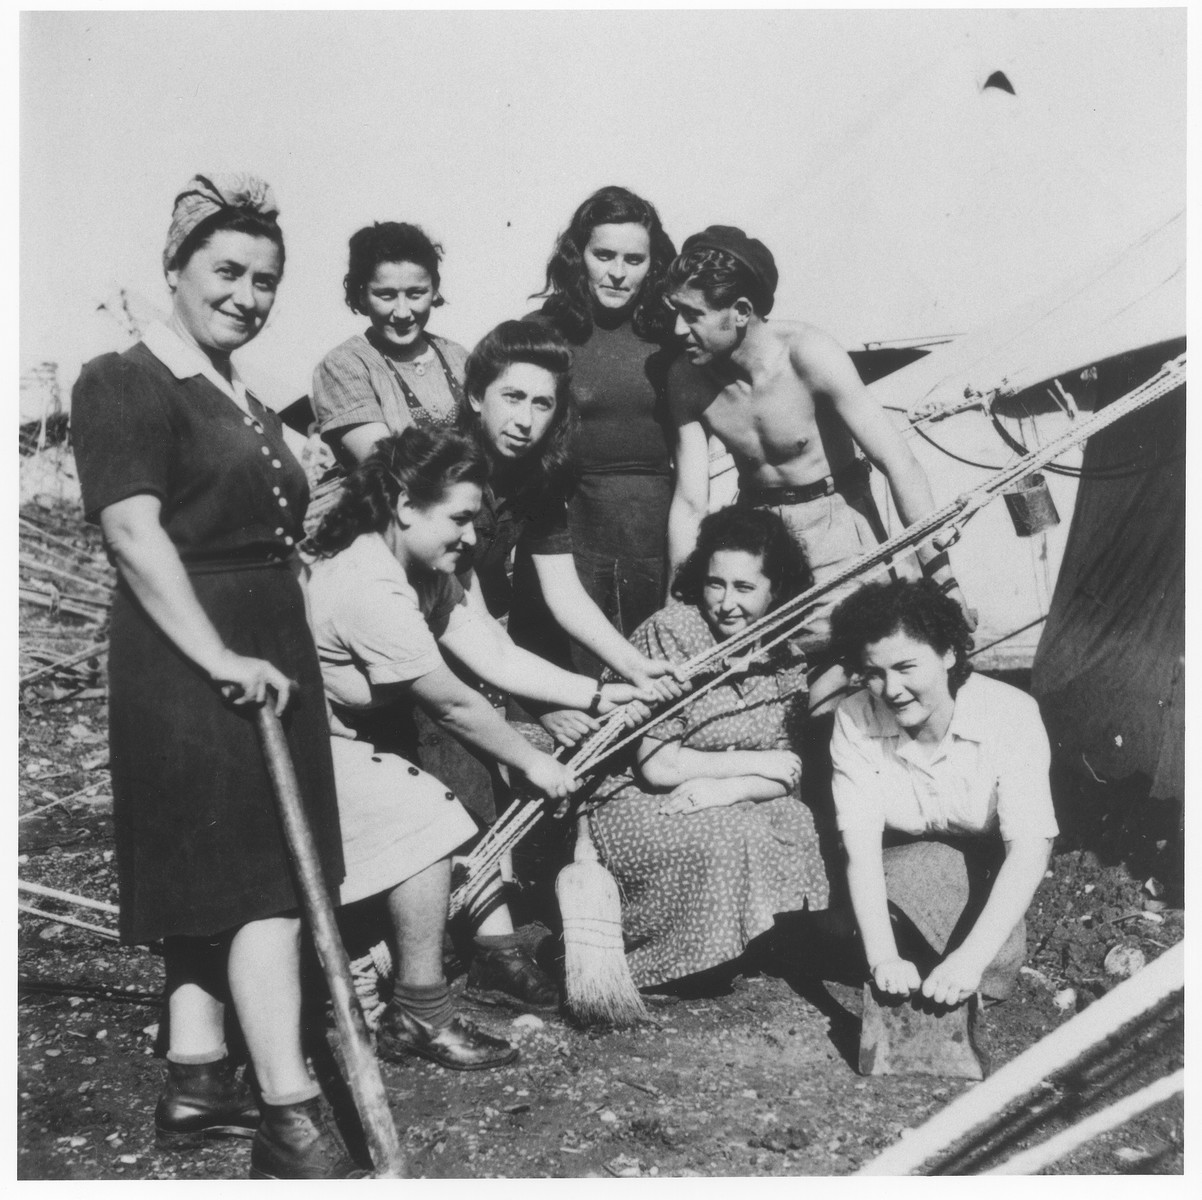 A group of young Jewish DPs pitch a tent in one of the detention camps on Cyprus.  Pictured from left to right are Malka ?, Pnina Halpern, Henchi Hellman, Rachel ?, Malka Hus, Richie Strasser and Leah Halpern.